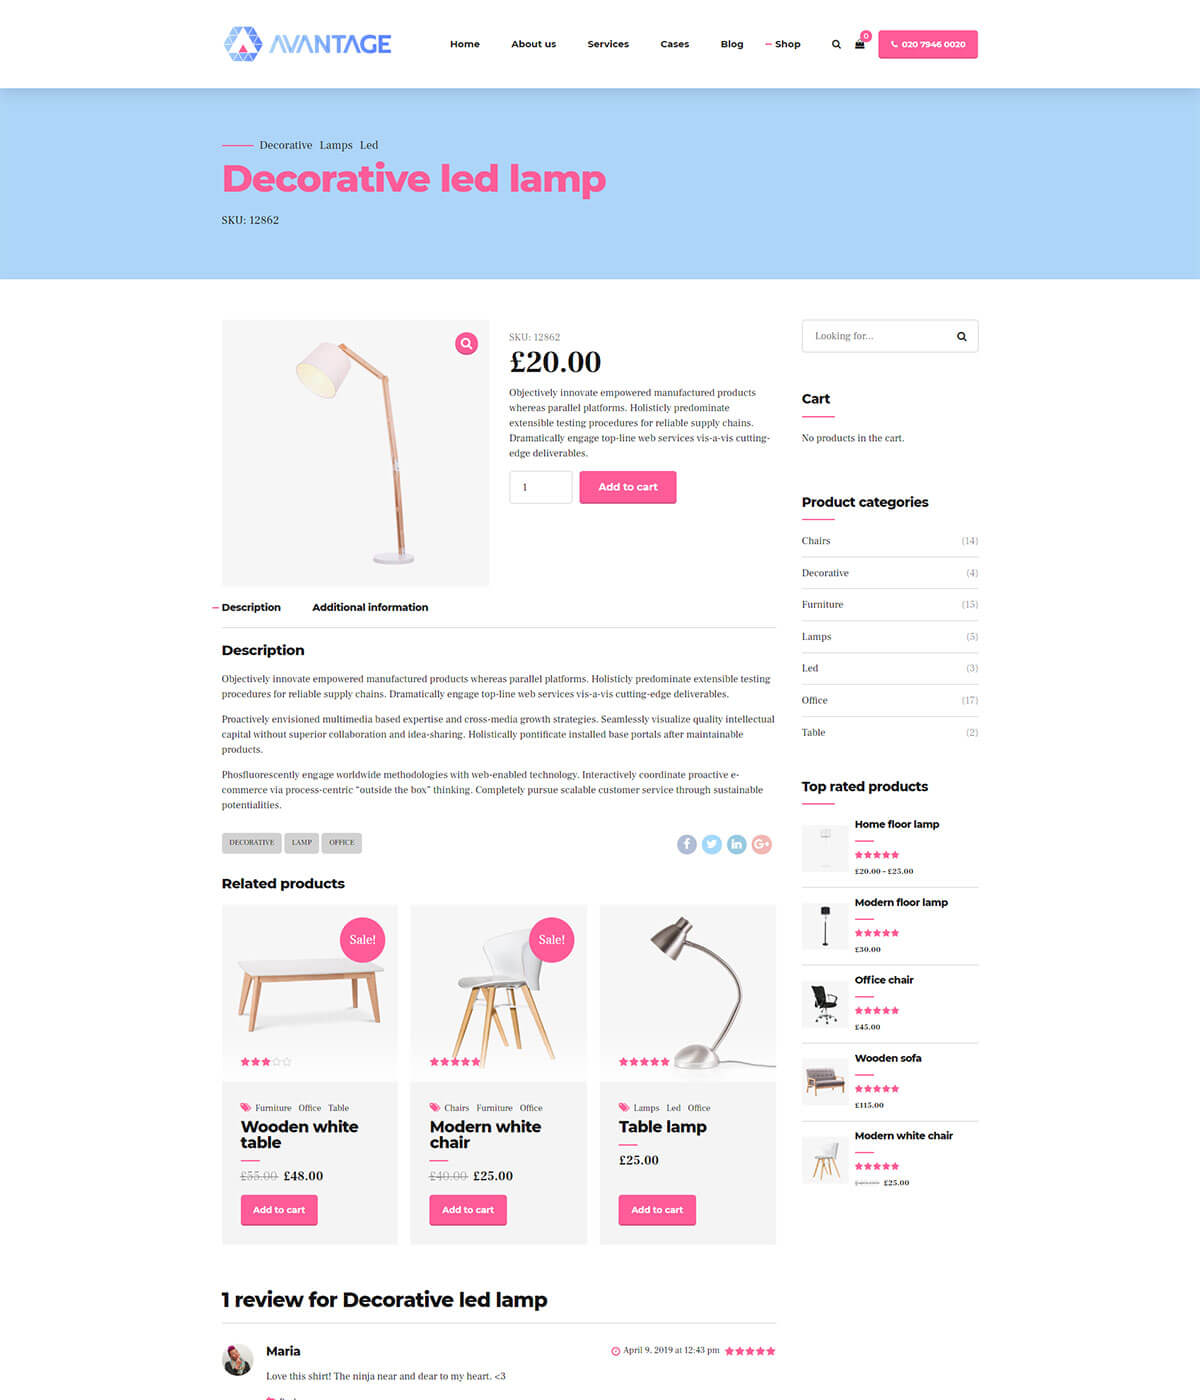 http://avantage.bold-themes.com/wp-content/uploads/2019/05/financial-15-product.jpg